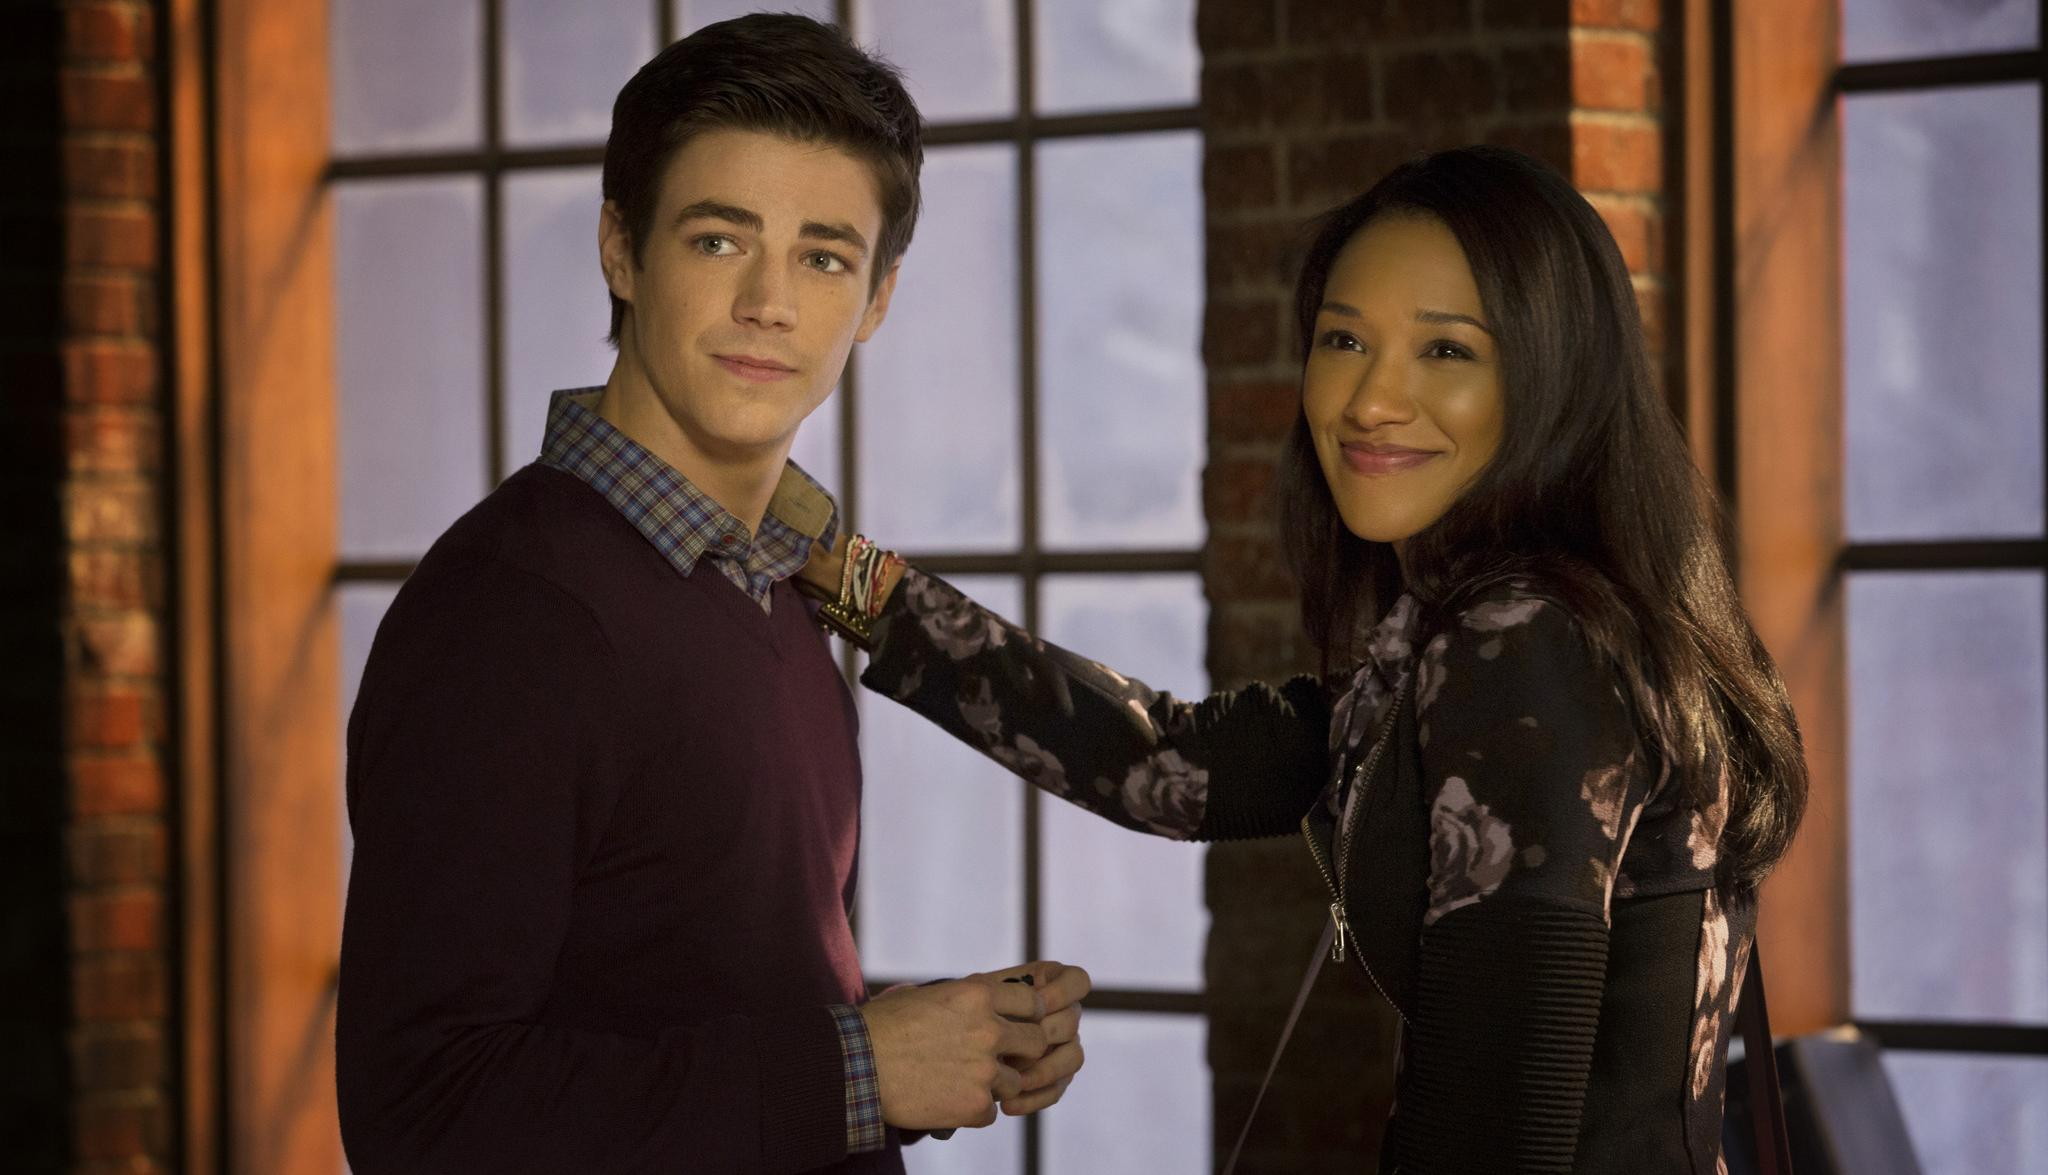 Grant Gustin as Barry Candice Patton as Iris